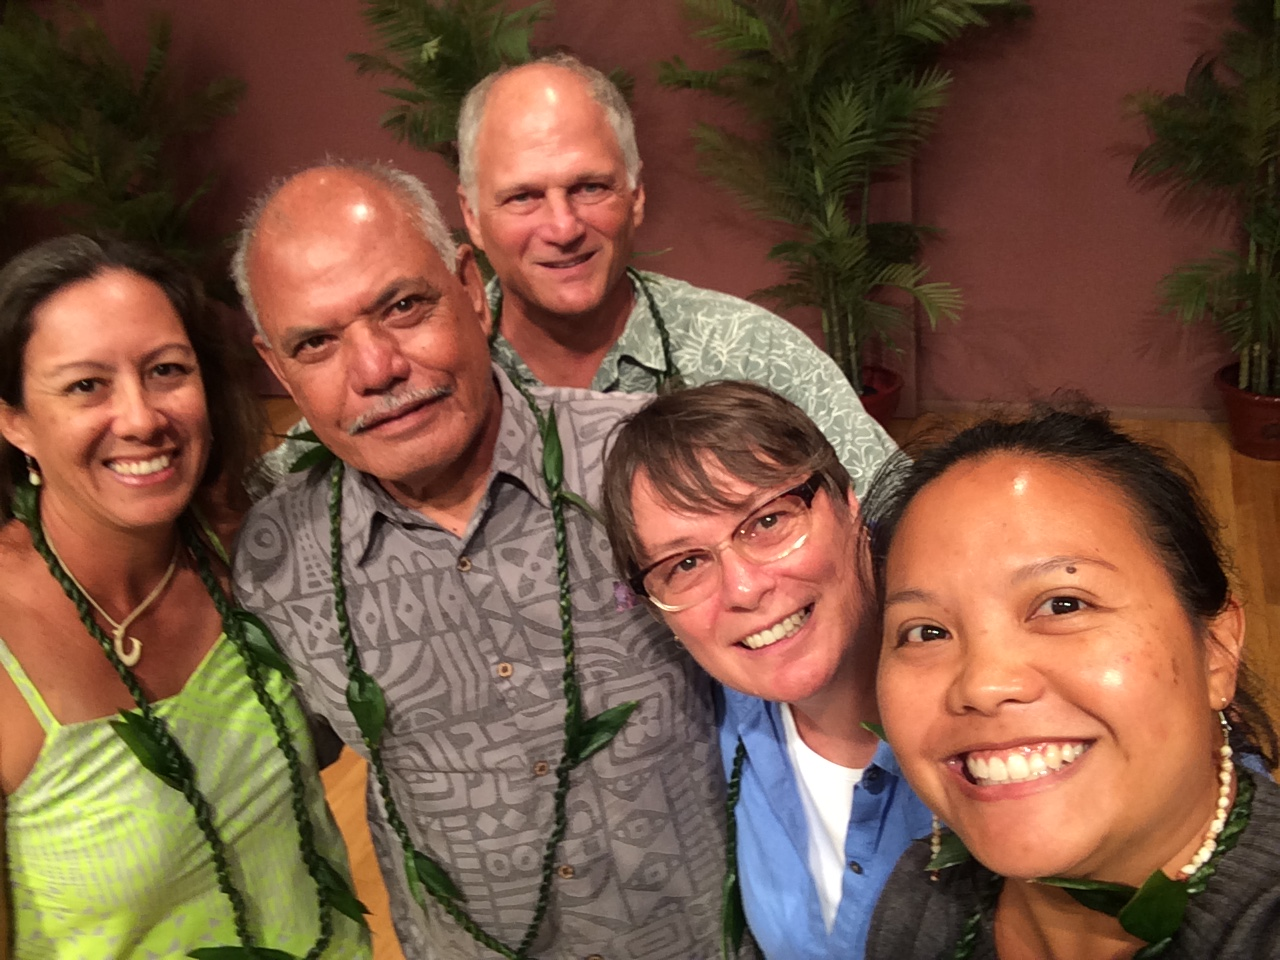 OUR AWESOME PANELISTS (L TO R): HIʻILEI KAWELO, UNCLE MAC POEPOE, DR. ALAN FRIEDLANDER, DR. RUTH GATES AND ROSIE